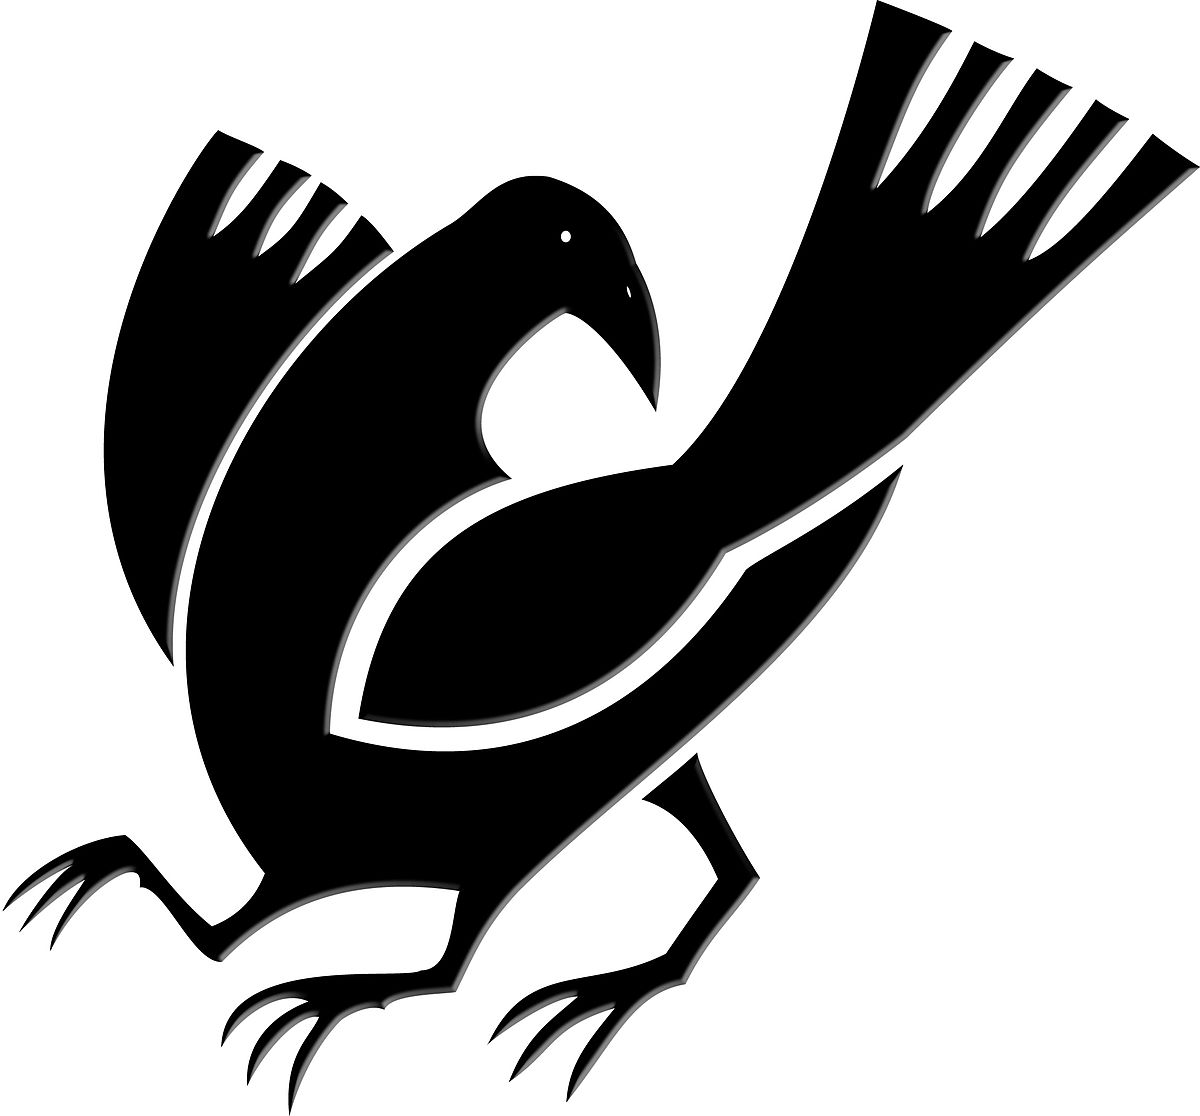 Symbol of three black crows